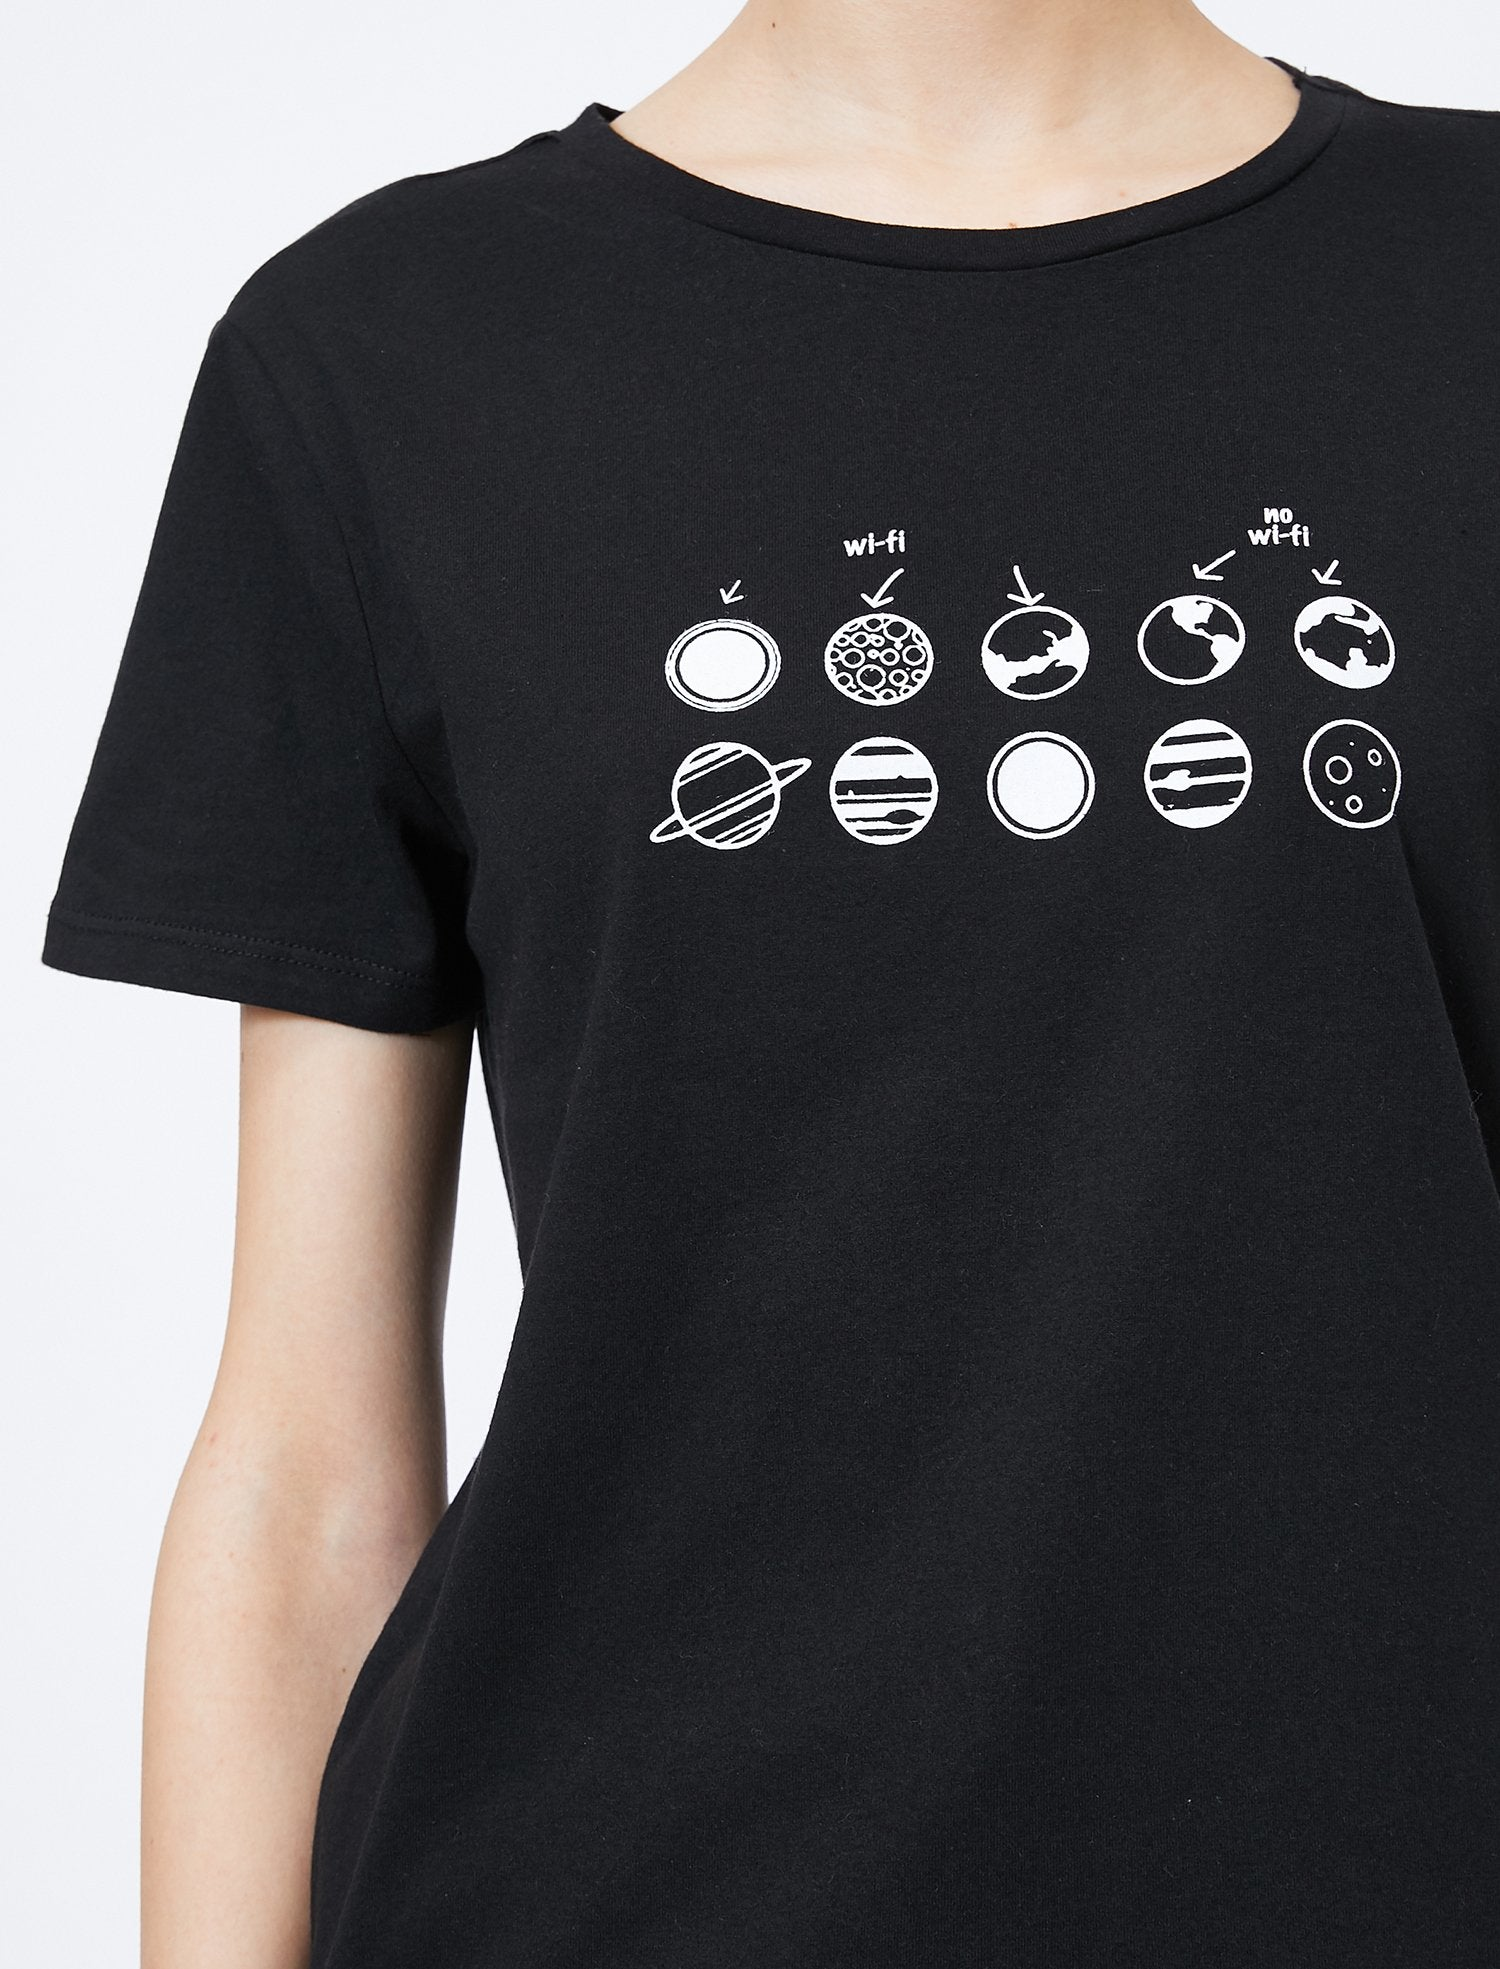 Graphic Tshirt in Black